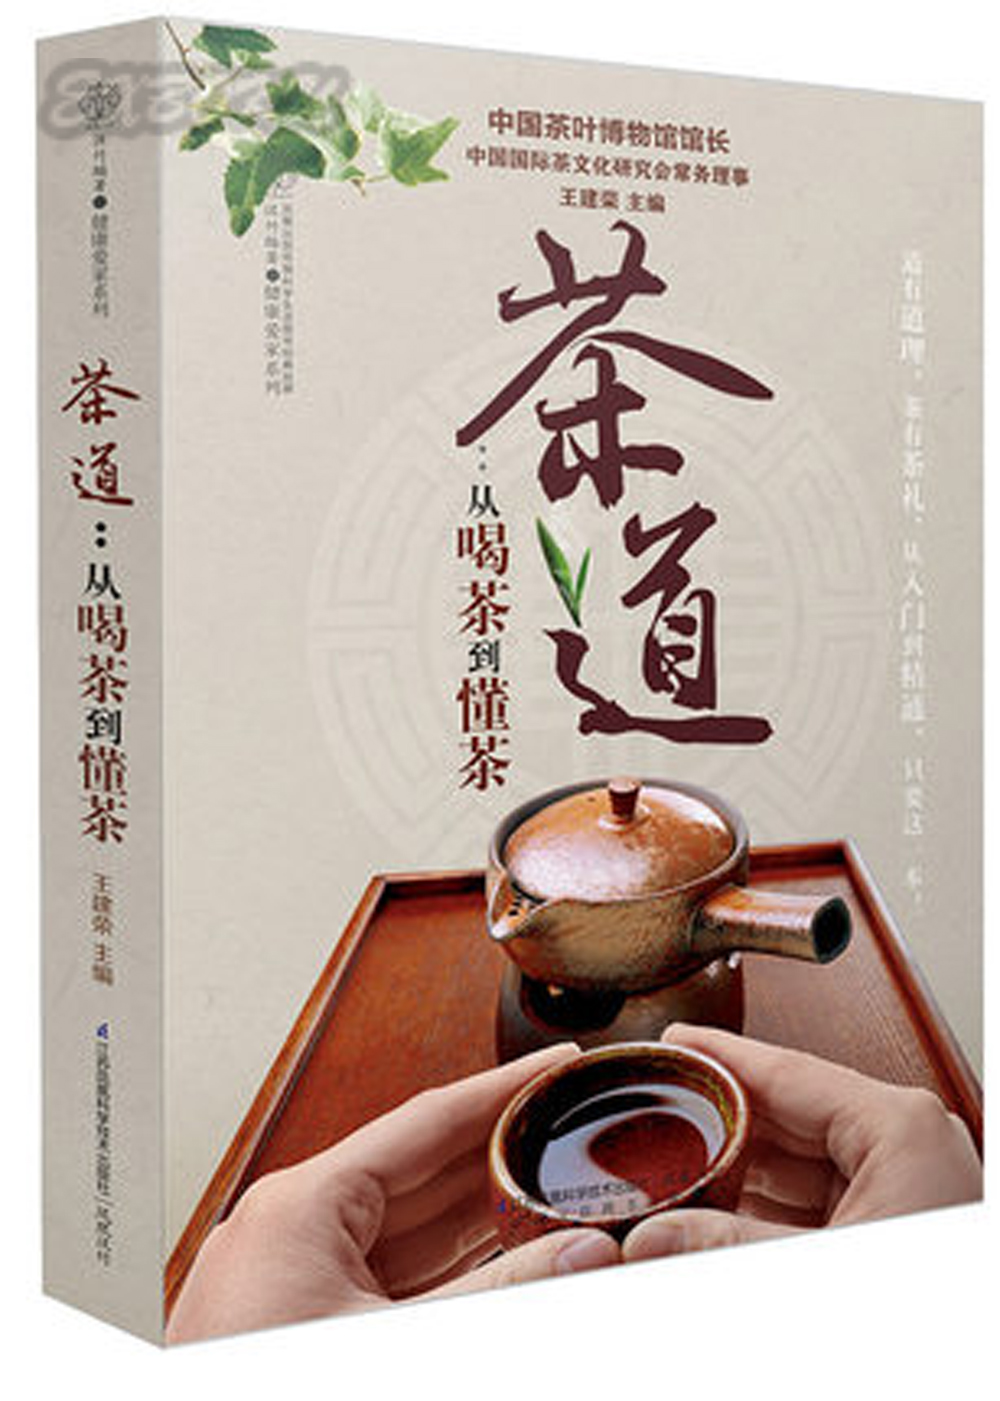 Tea ceremony- tea from drinking tea to understand (more than 600 Figure experts teach you to read the tea) green/red tea chinese oolong tea 9gx5cps anxi tieguanyin loose tea tikuanyin oolong green tie guan yin tea 1752 organic slimming tea